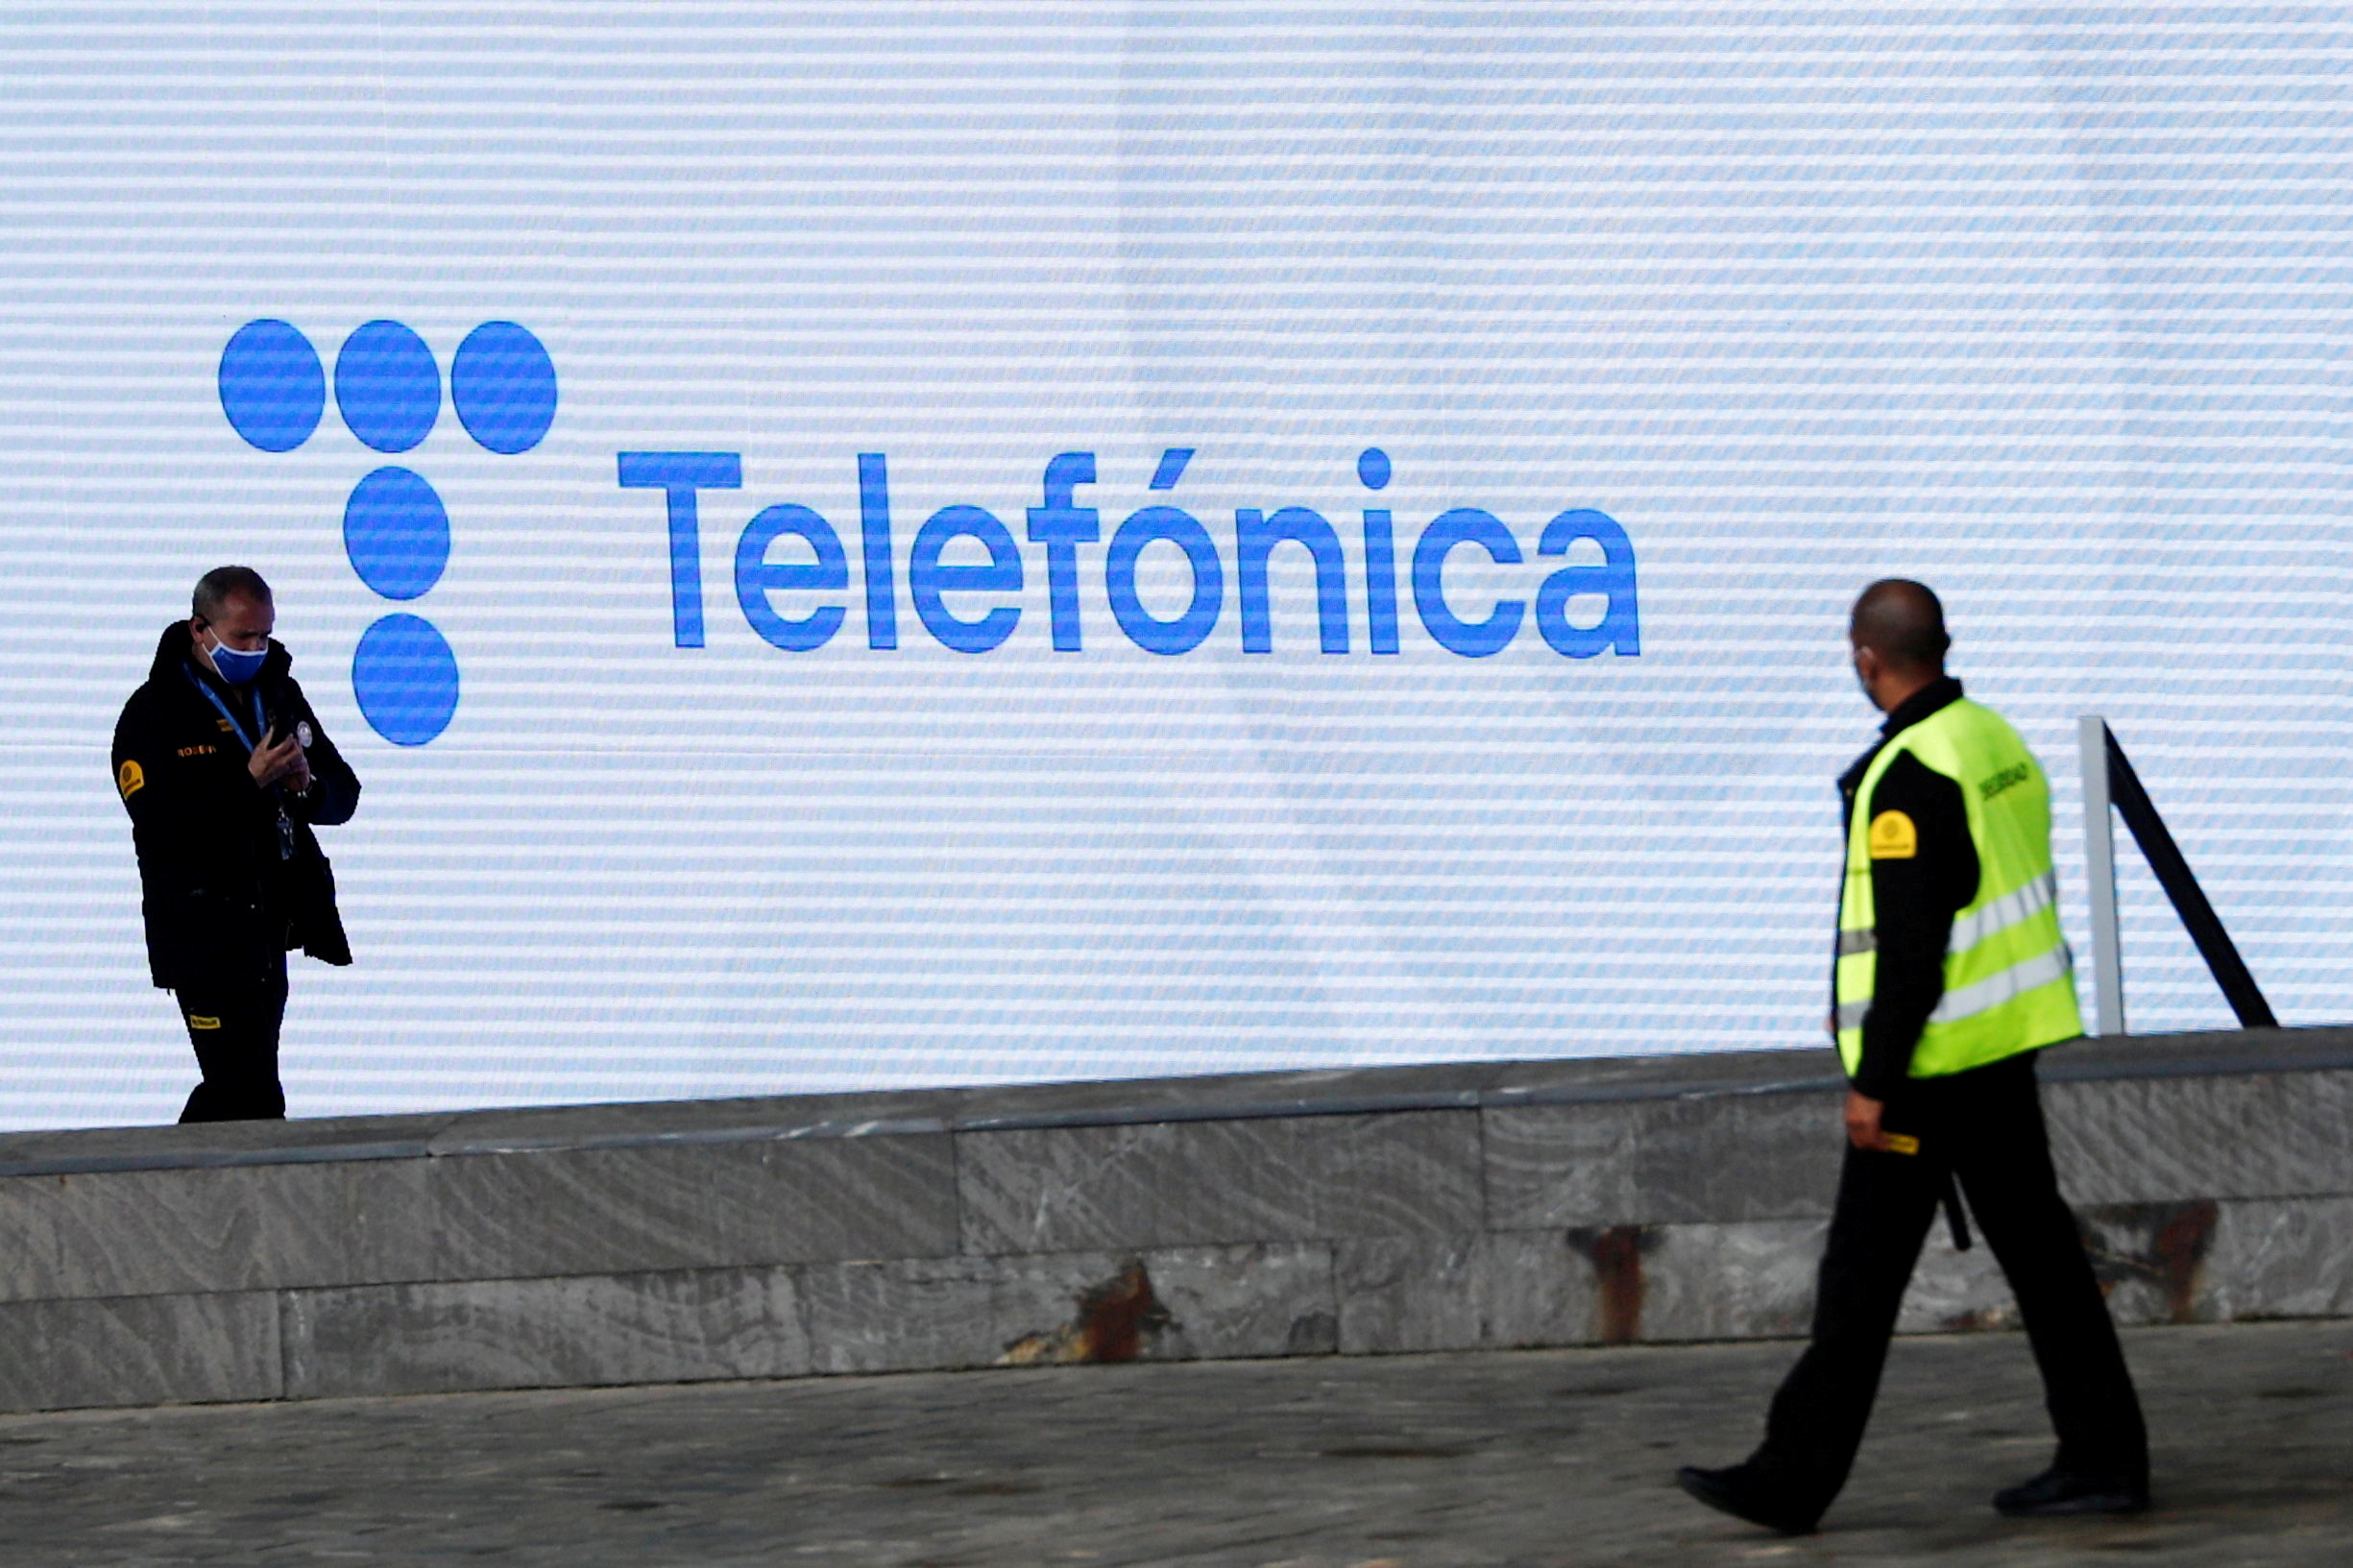 Security guards walk past a screen displaying the logo of Spanish company Telefonica at its headquarters in Madrid, Spain, May 12, 2021. REUTERS/Sergio Perez/File Photo